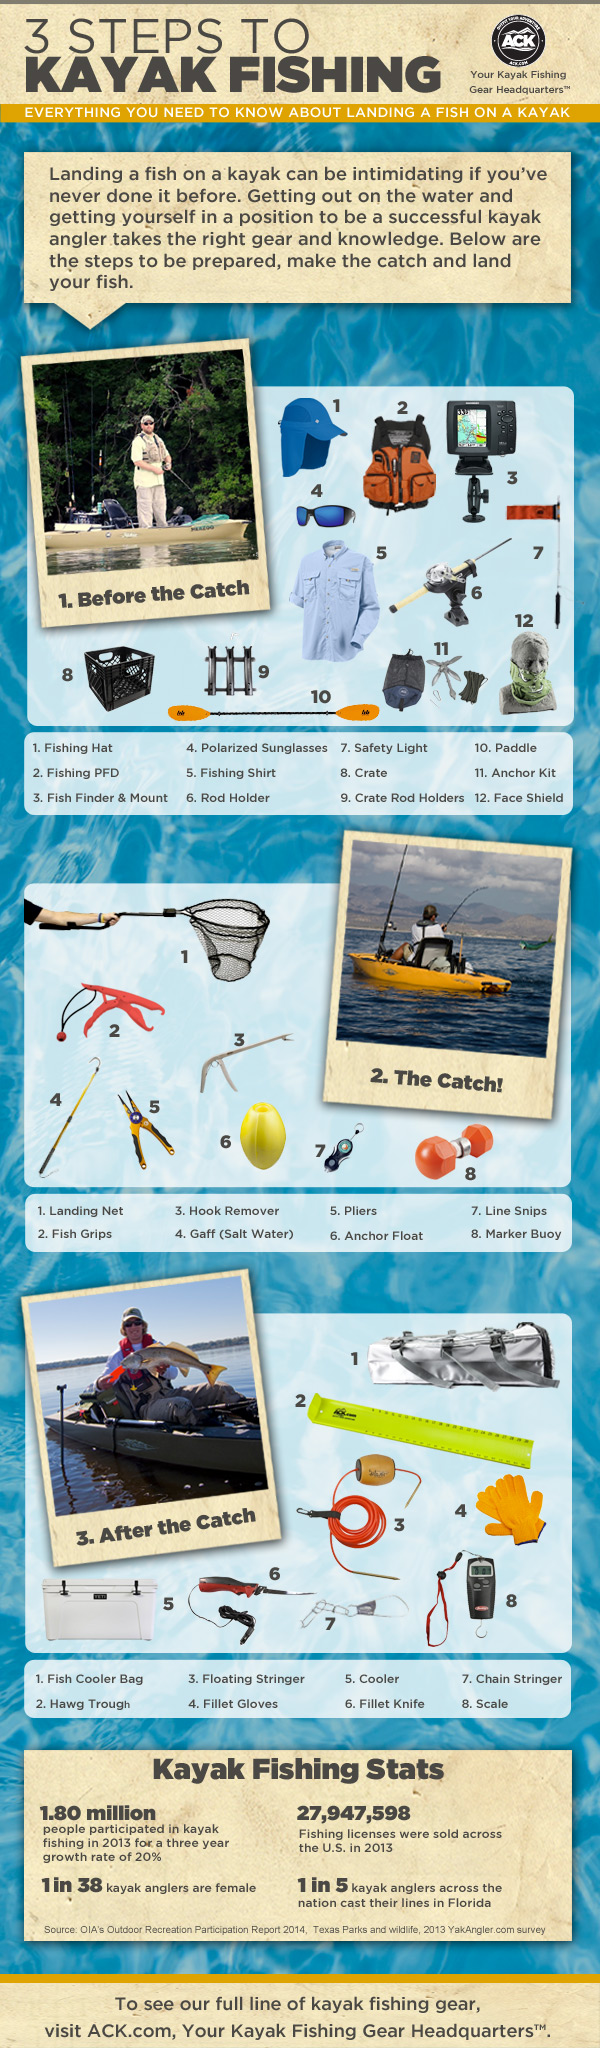 Equipment you need for freshwater kayak fishing